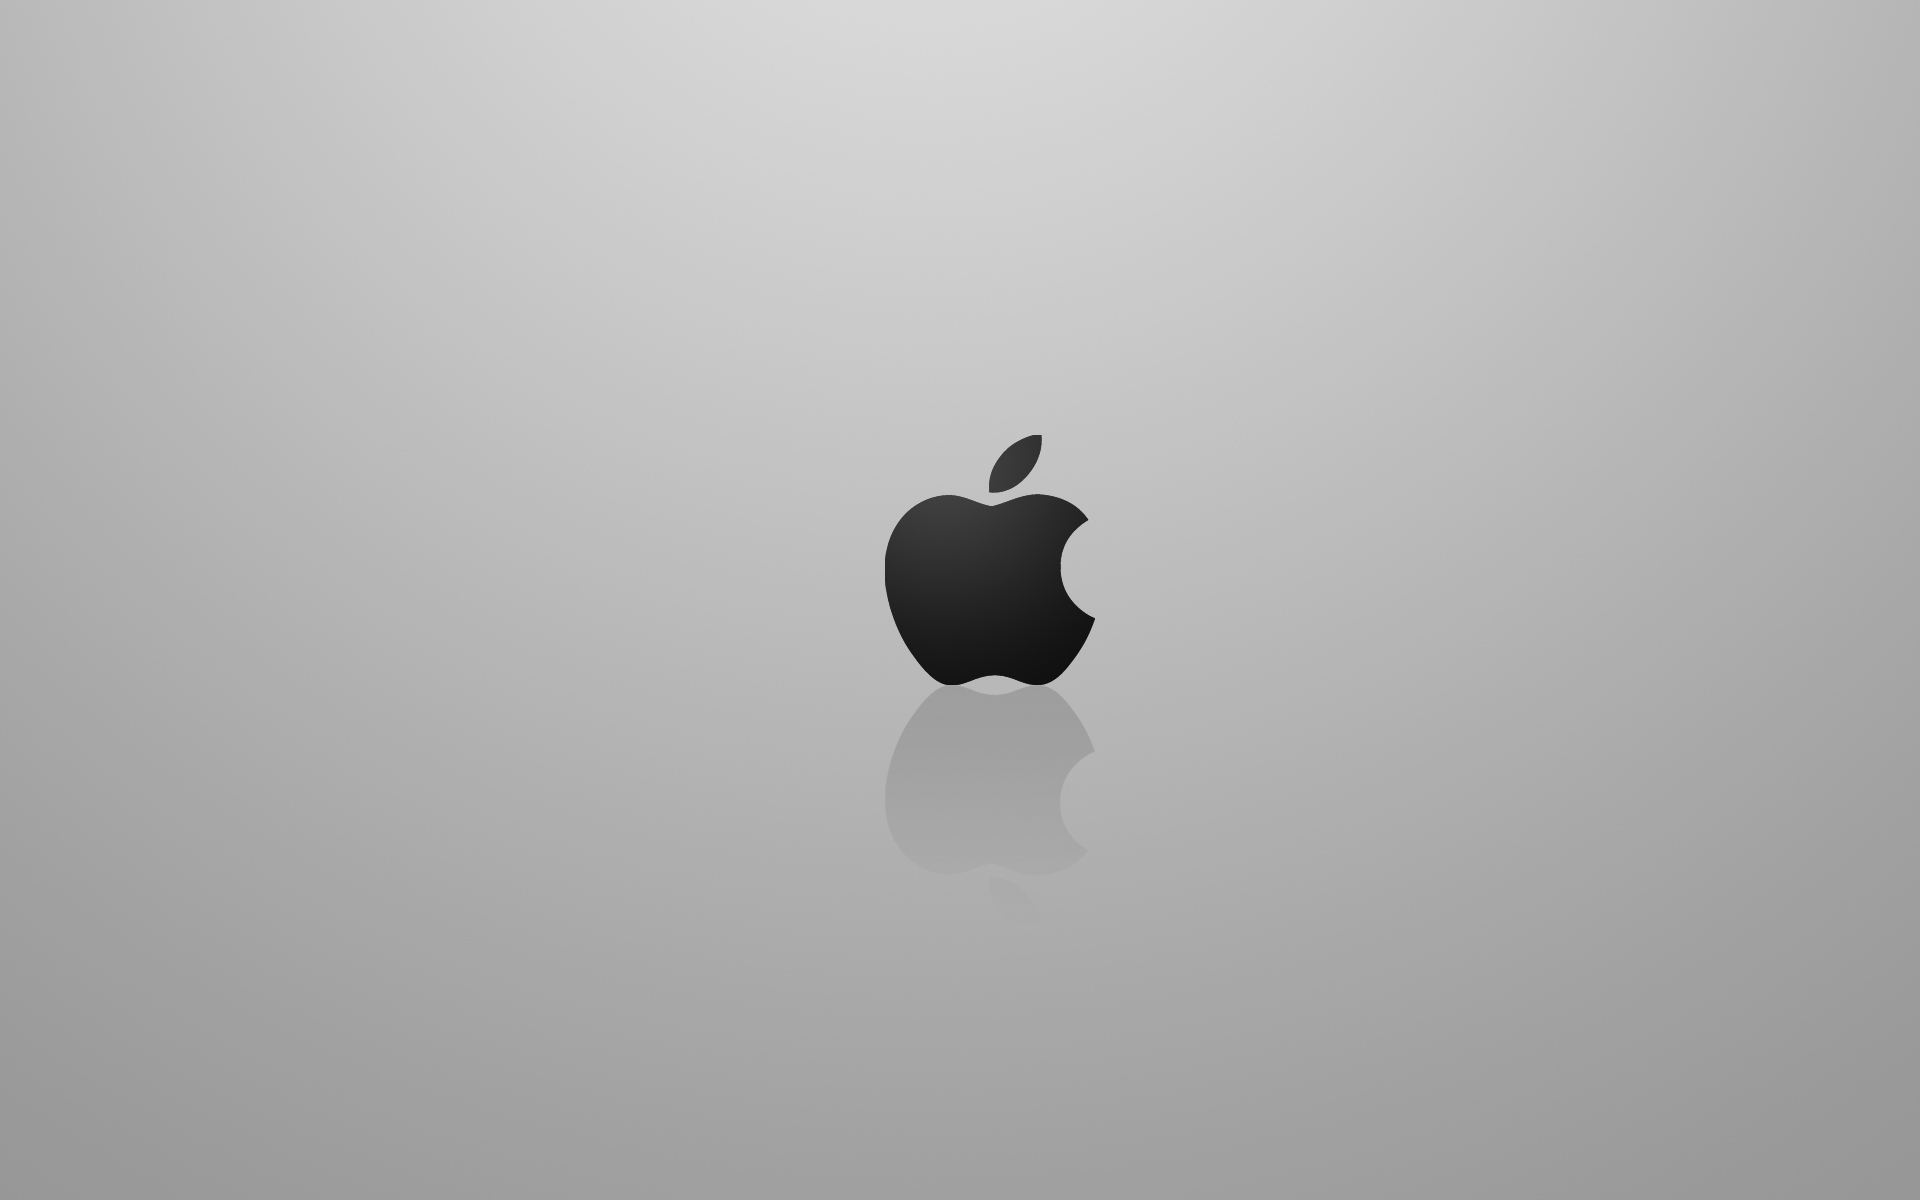 Lovely Apple Wallpaper